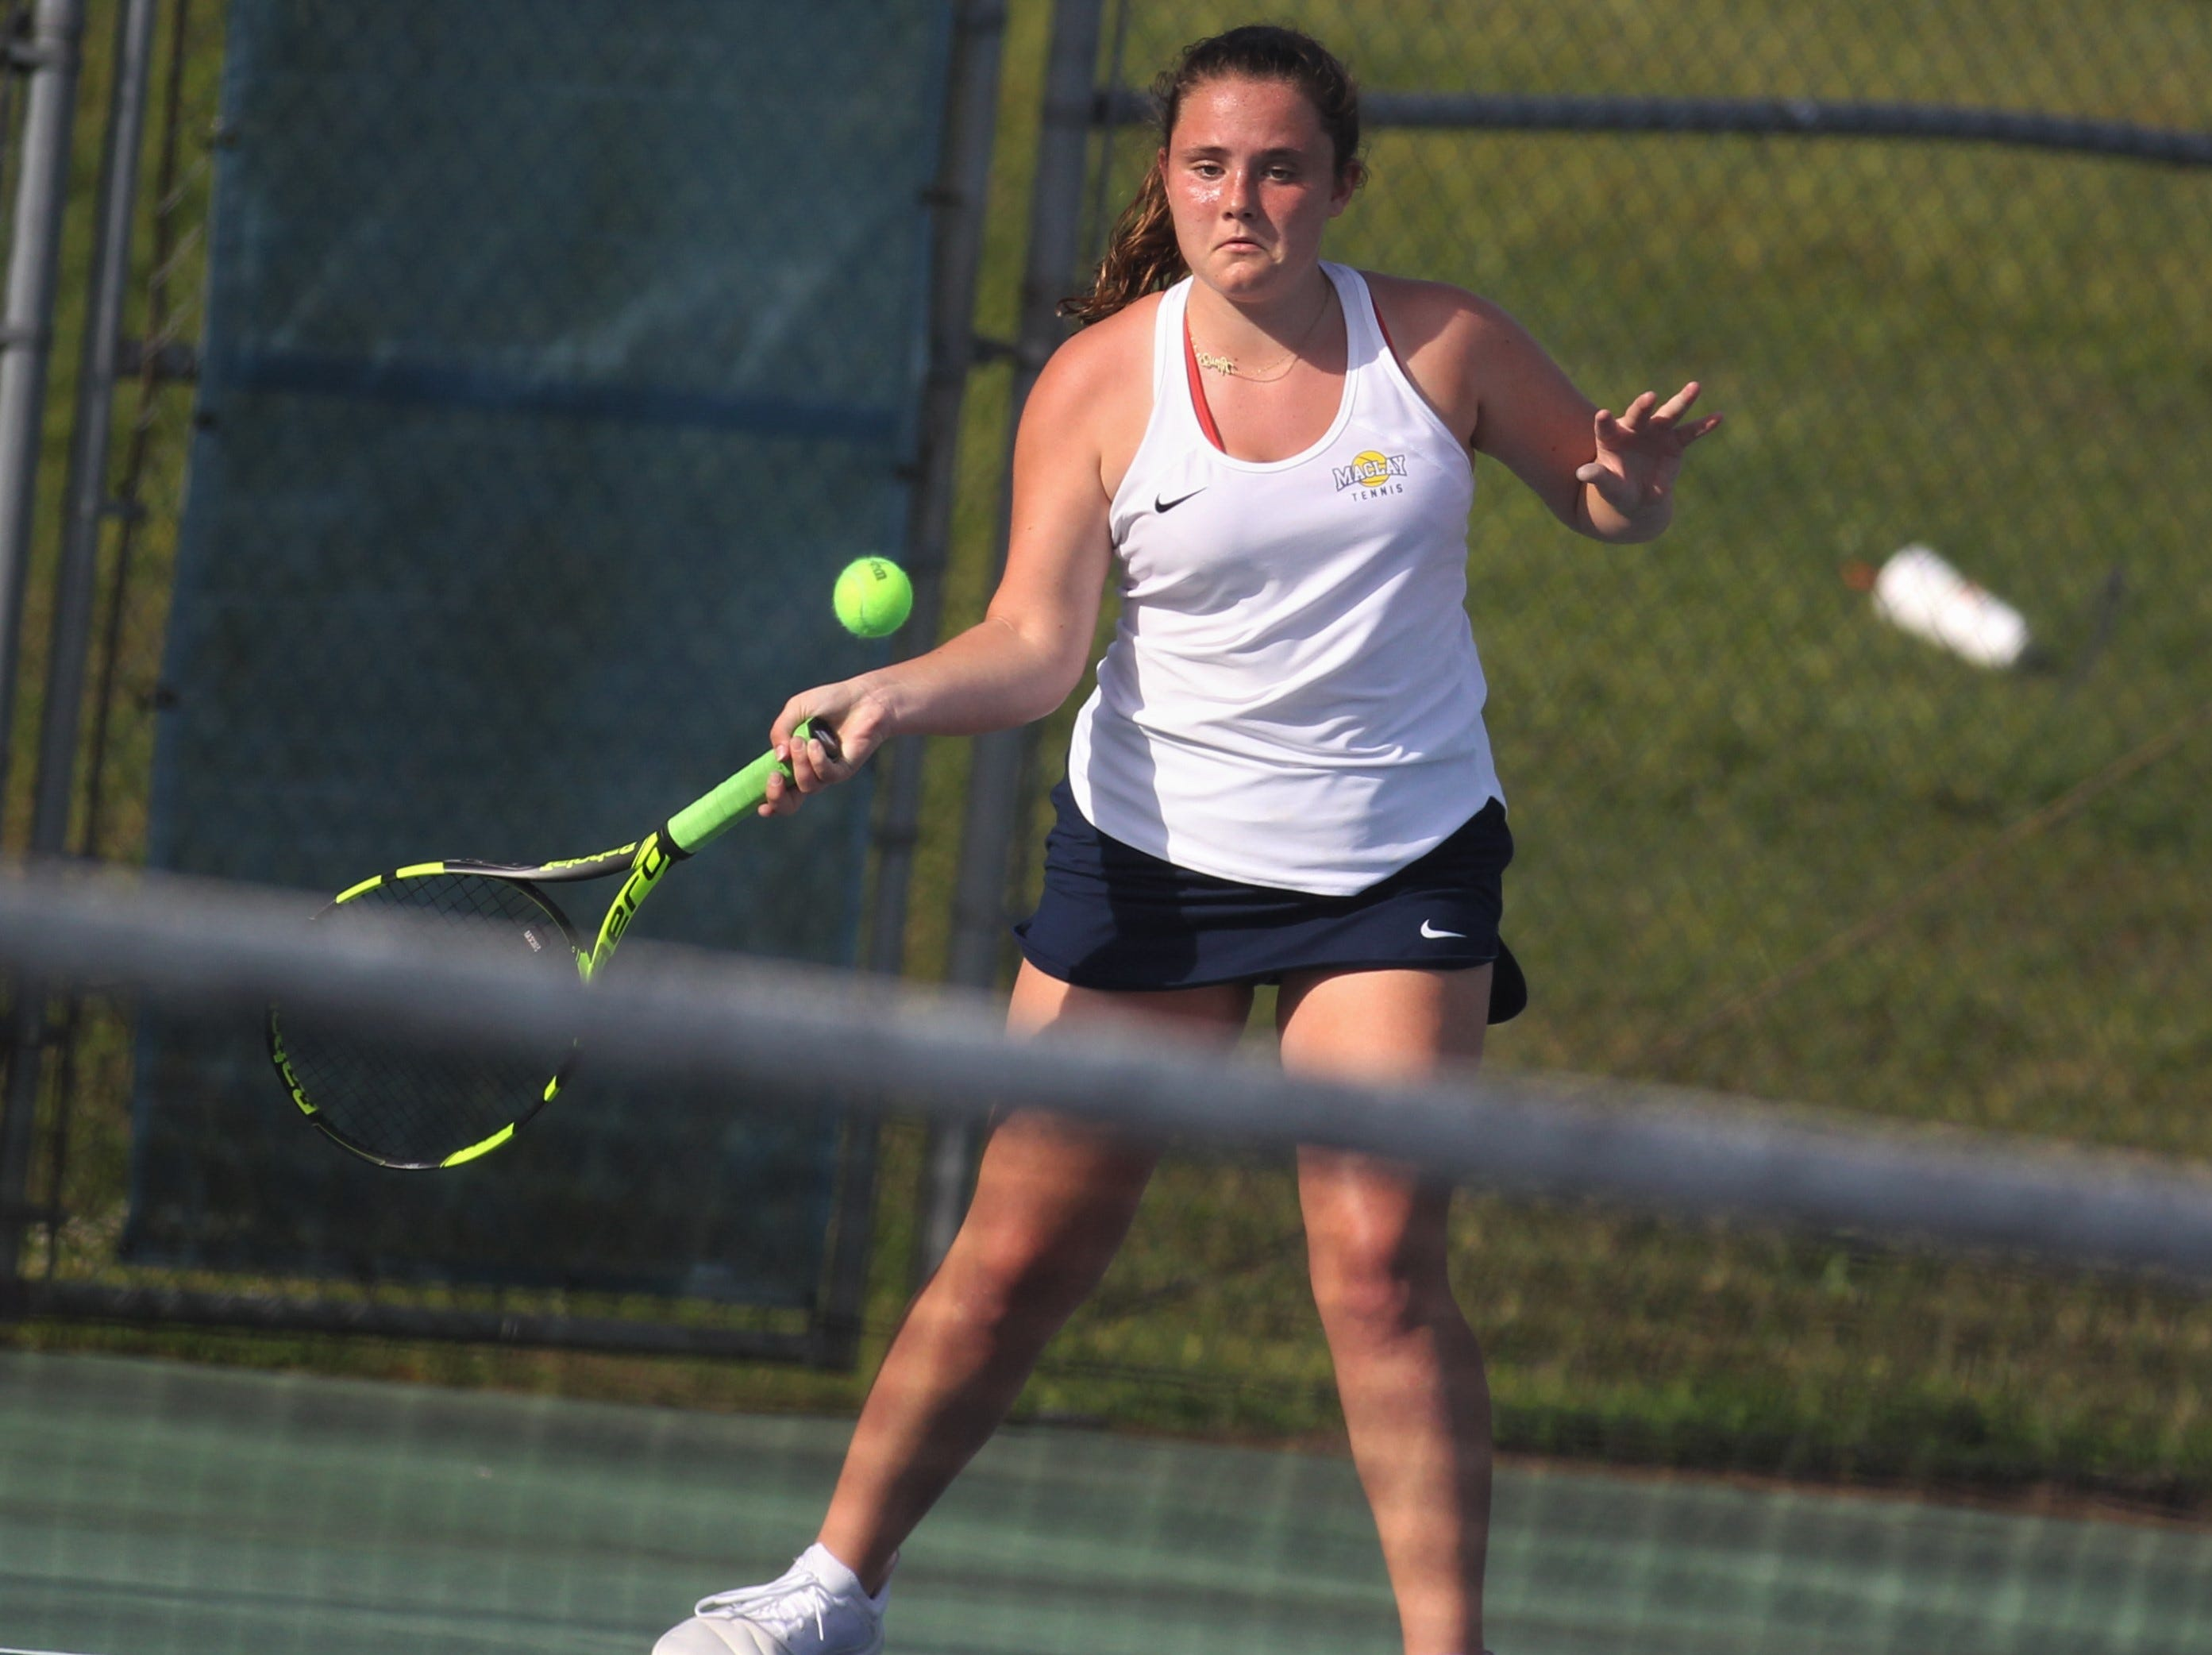 Maclay's Emily Macri plays during the boys and girls tennis city tournament at Tom Brown Park on March 13, 2019.